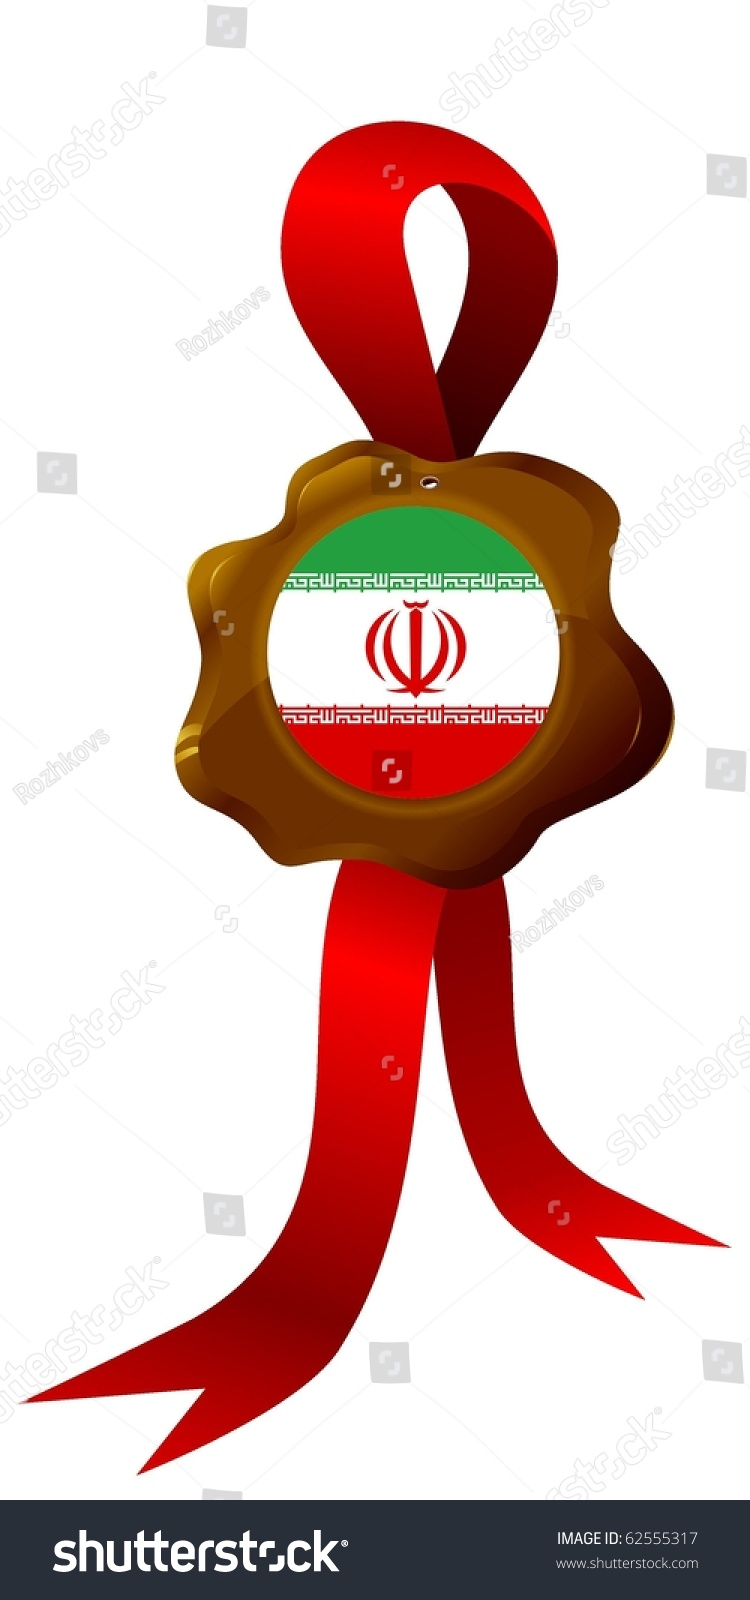 Vector label national symbols iran stock illustration 62555317 vector label with national symbols of iran buycottarizona Choice Image